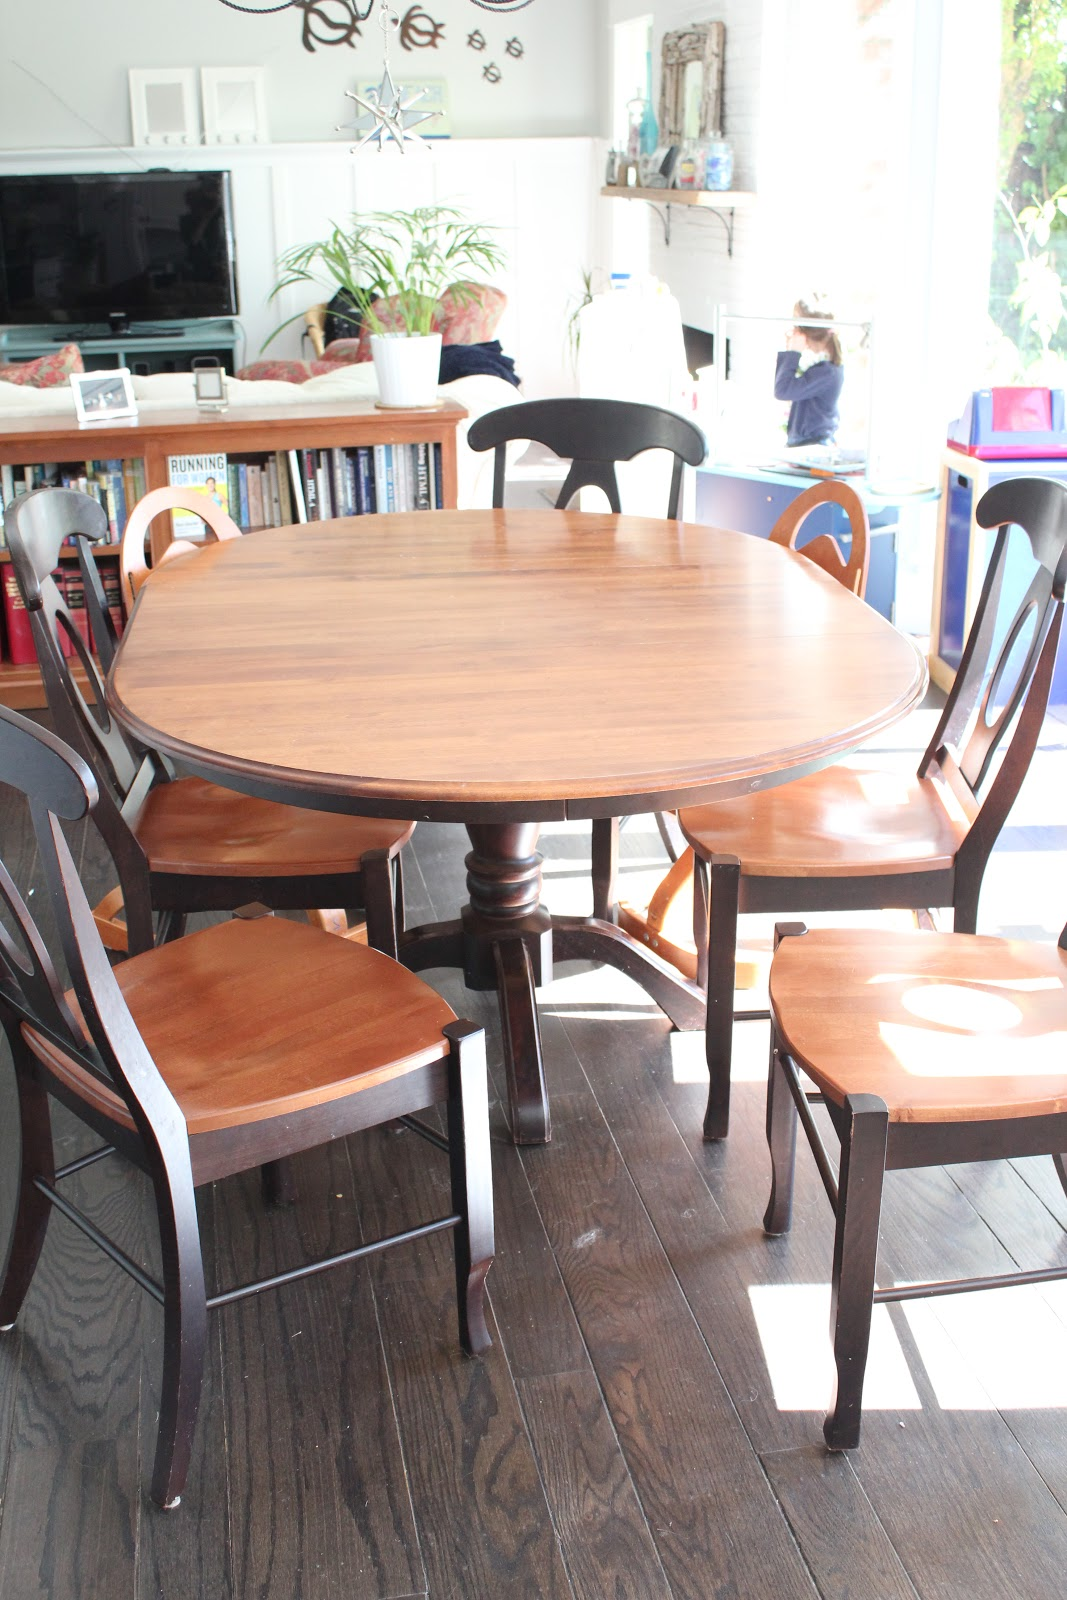 Refinishing Dining Room Table and Chairs